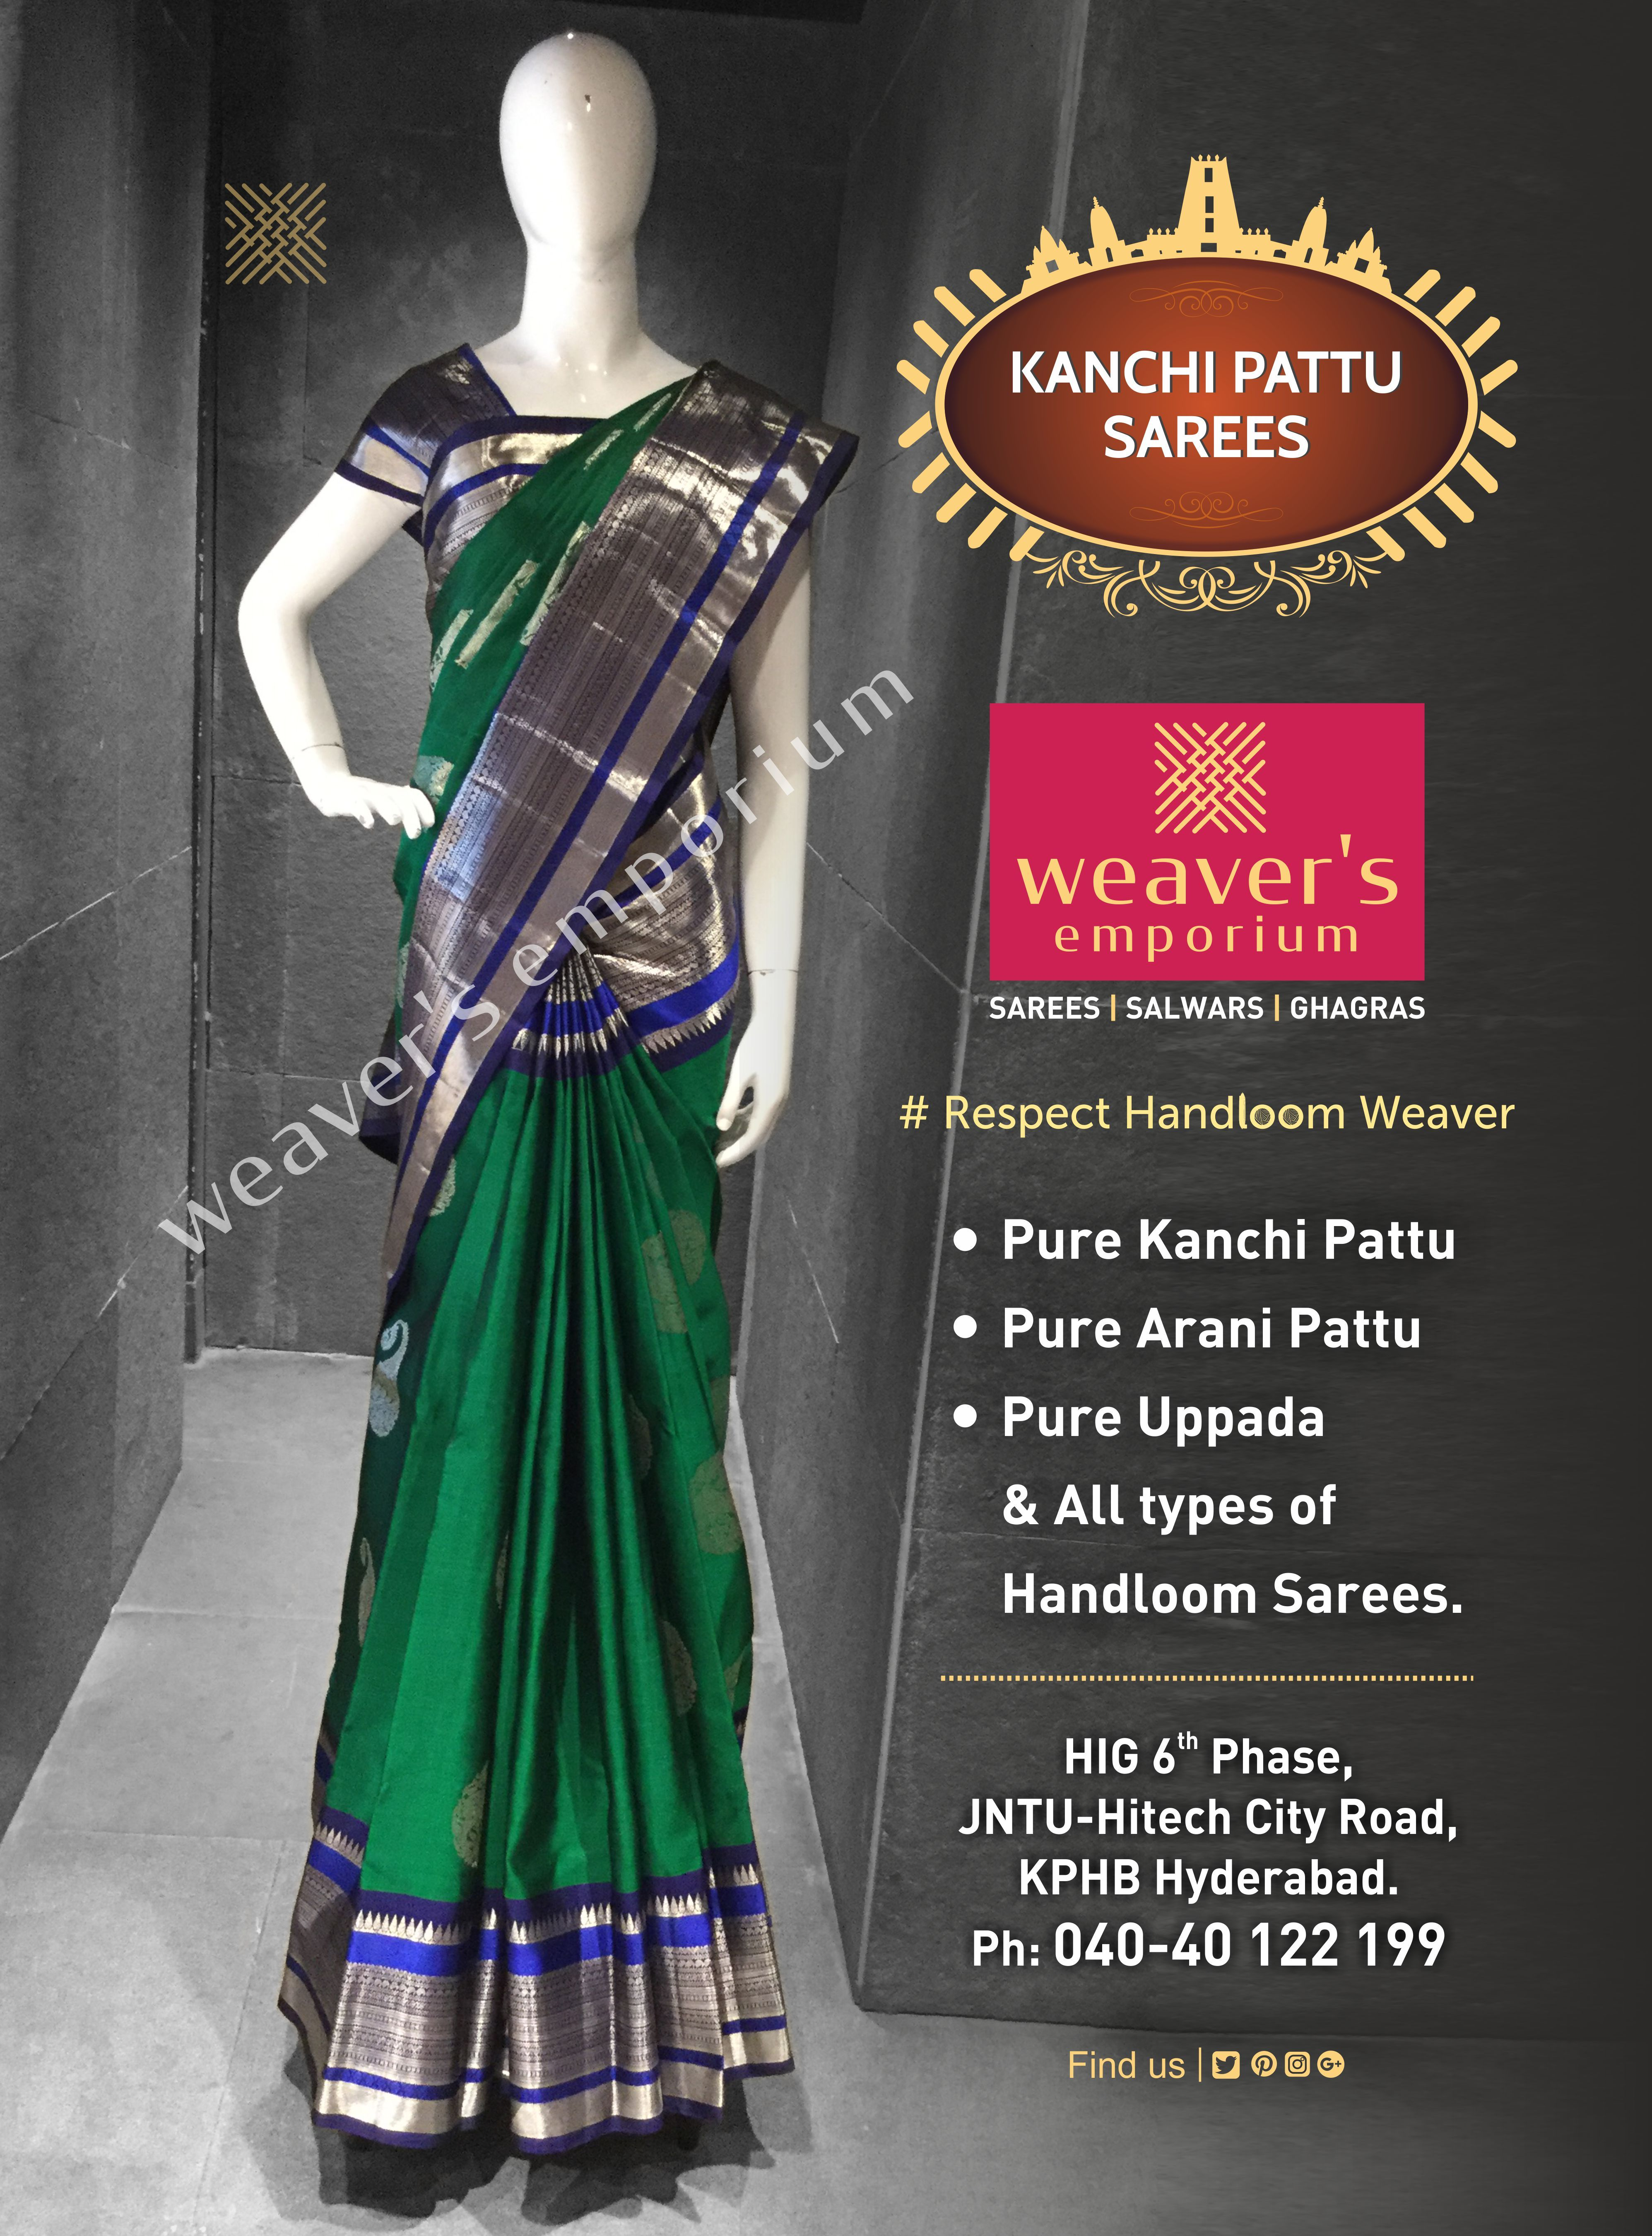 Pin By Weavers Emporium On Kanchi Pattu Sarees Saree Handloom Saree Victorian Dress